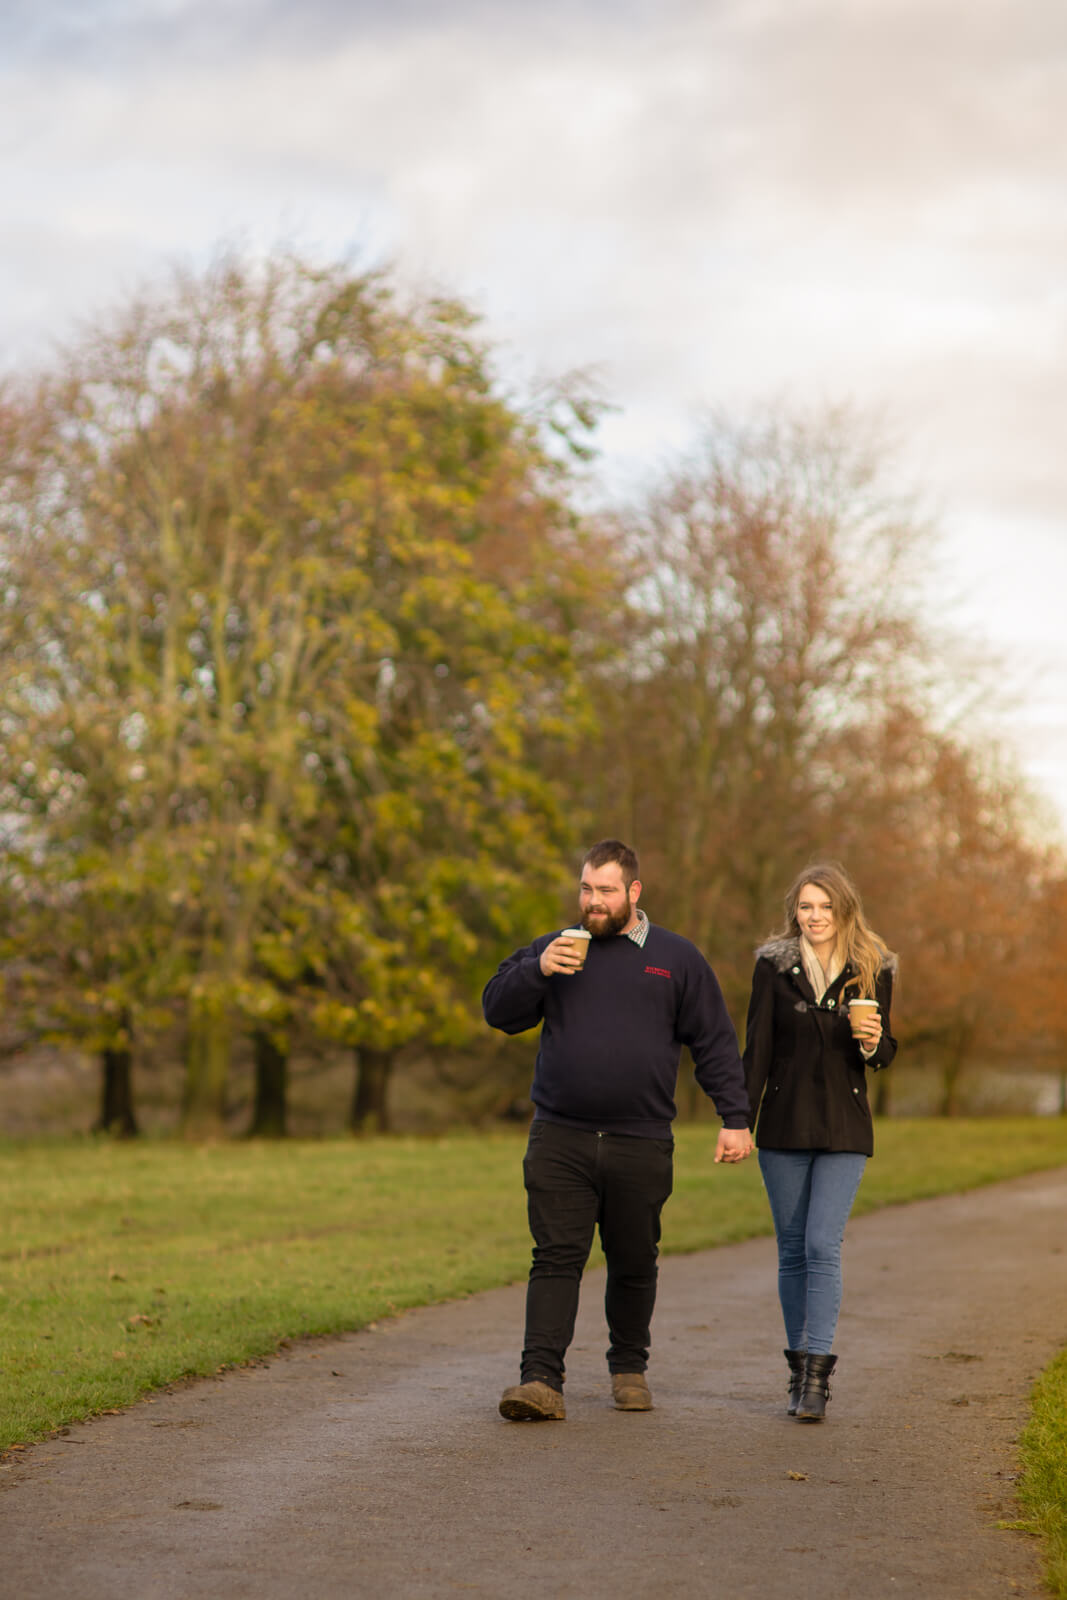 Couple walking down a tree lined path with cups of coffee